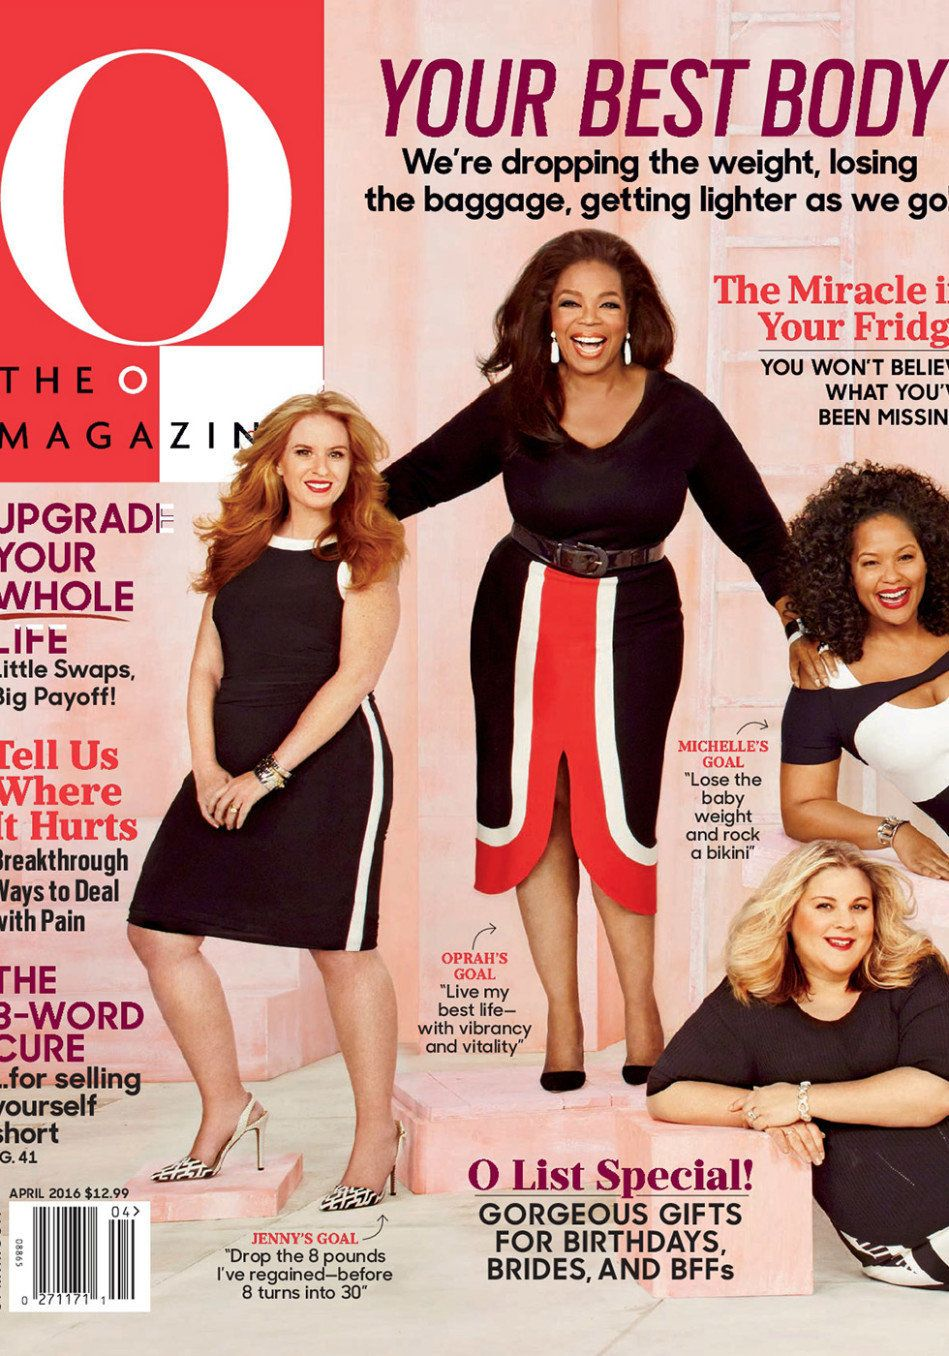 """""""It's harder than it looks, isn't it?"""" said Oprah as she posed with the women featured in """"Lighter as We Go"""" at this month's"""